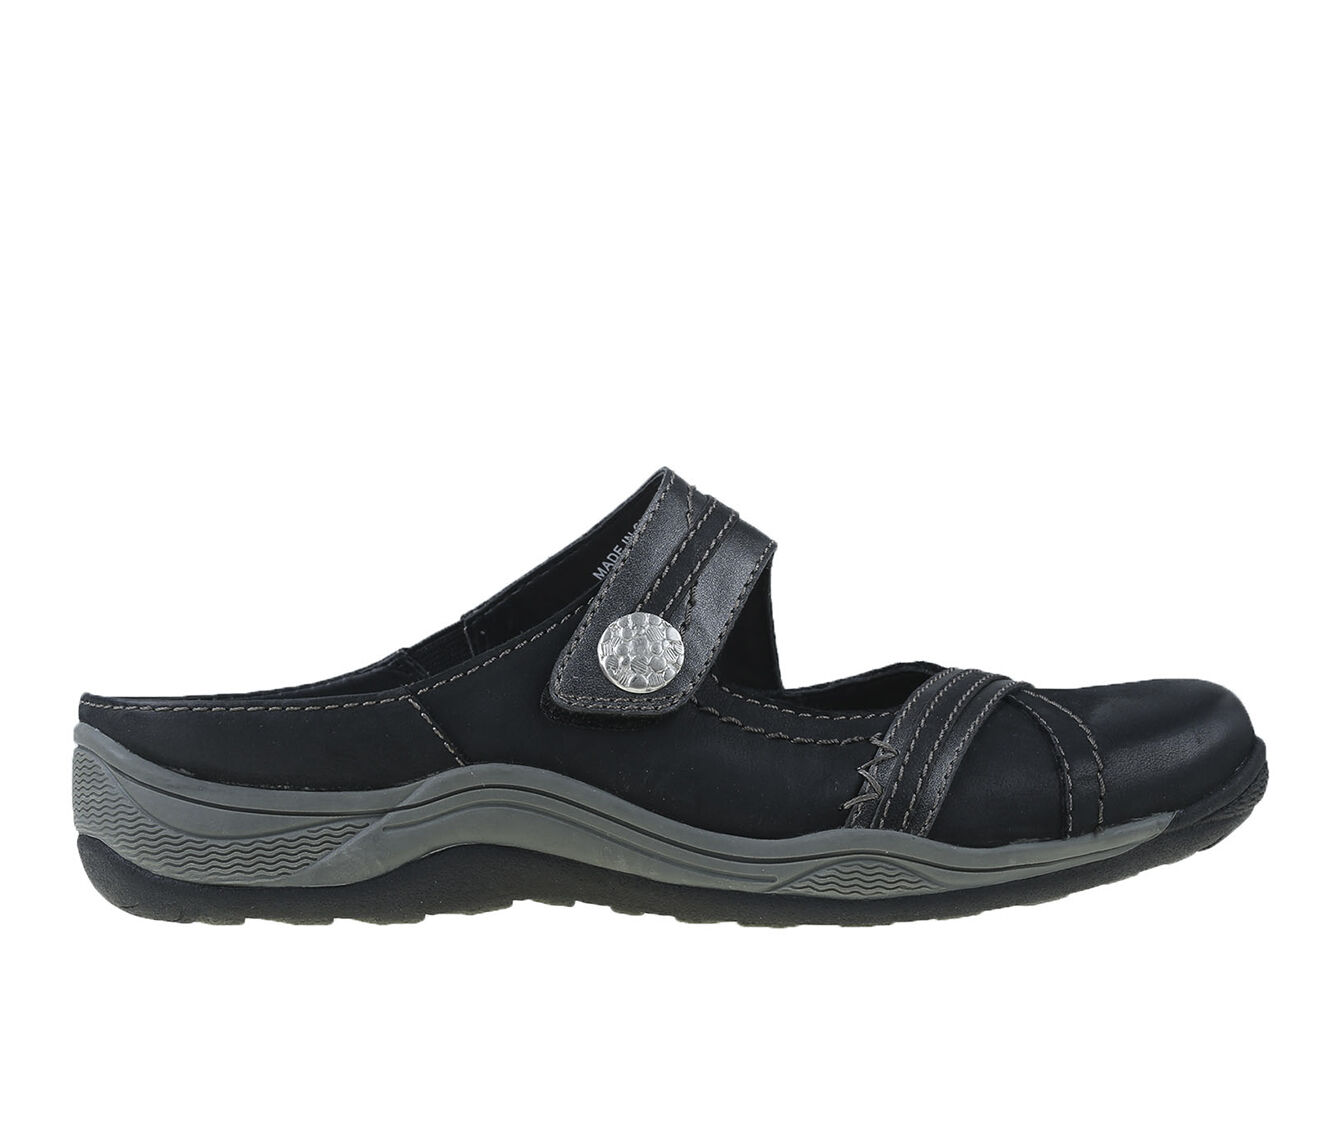 Women's Earth Origins Clara Chloe Clogs Black